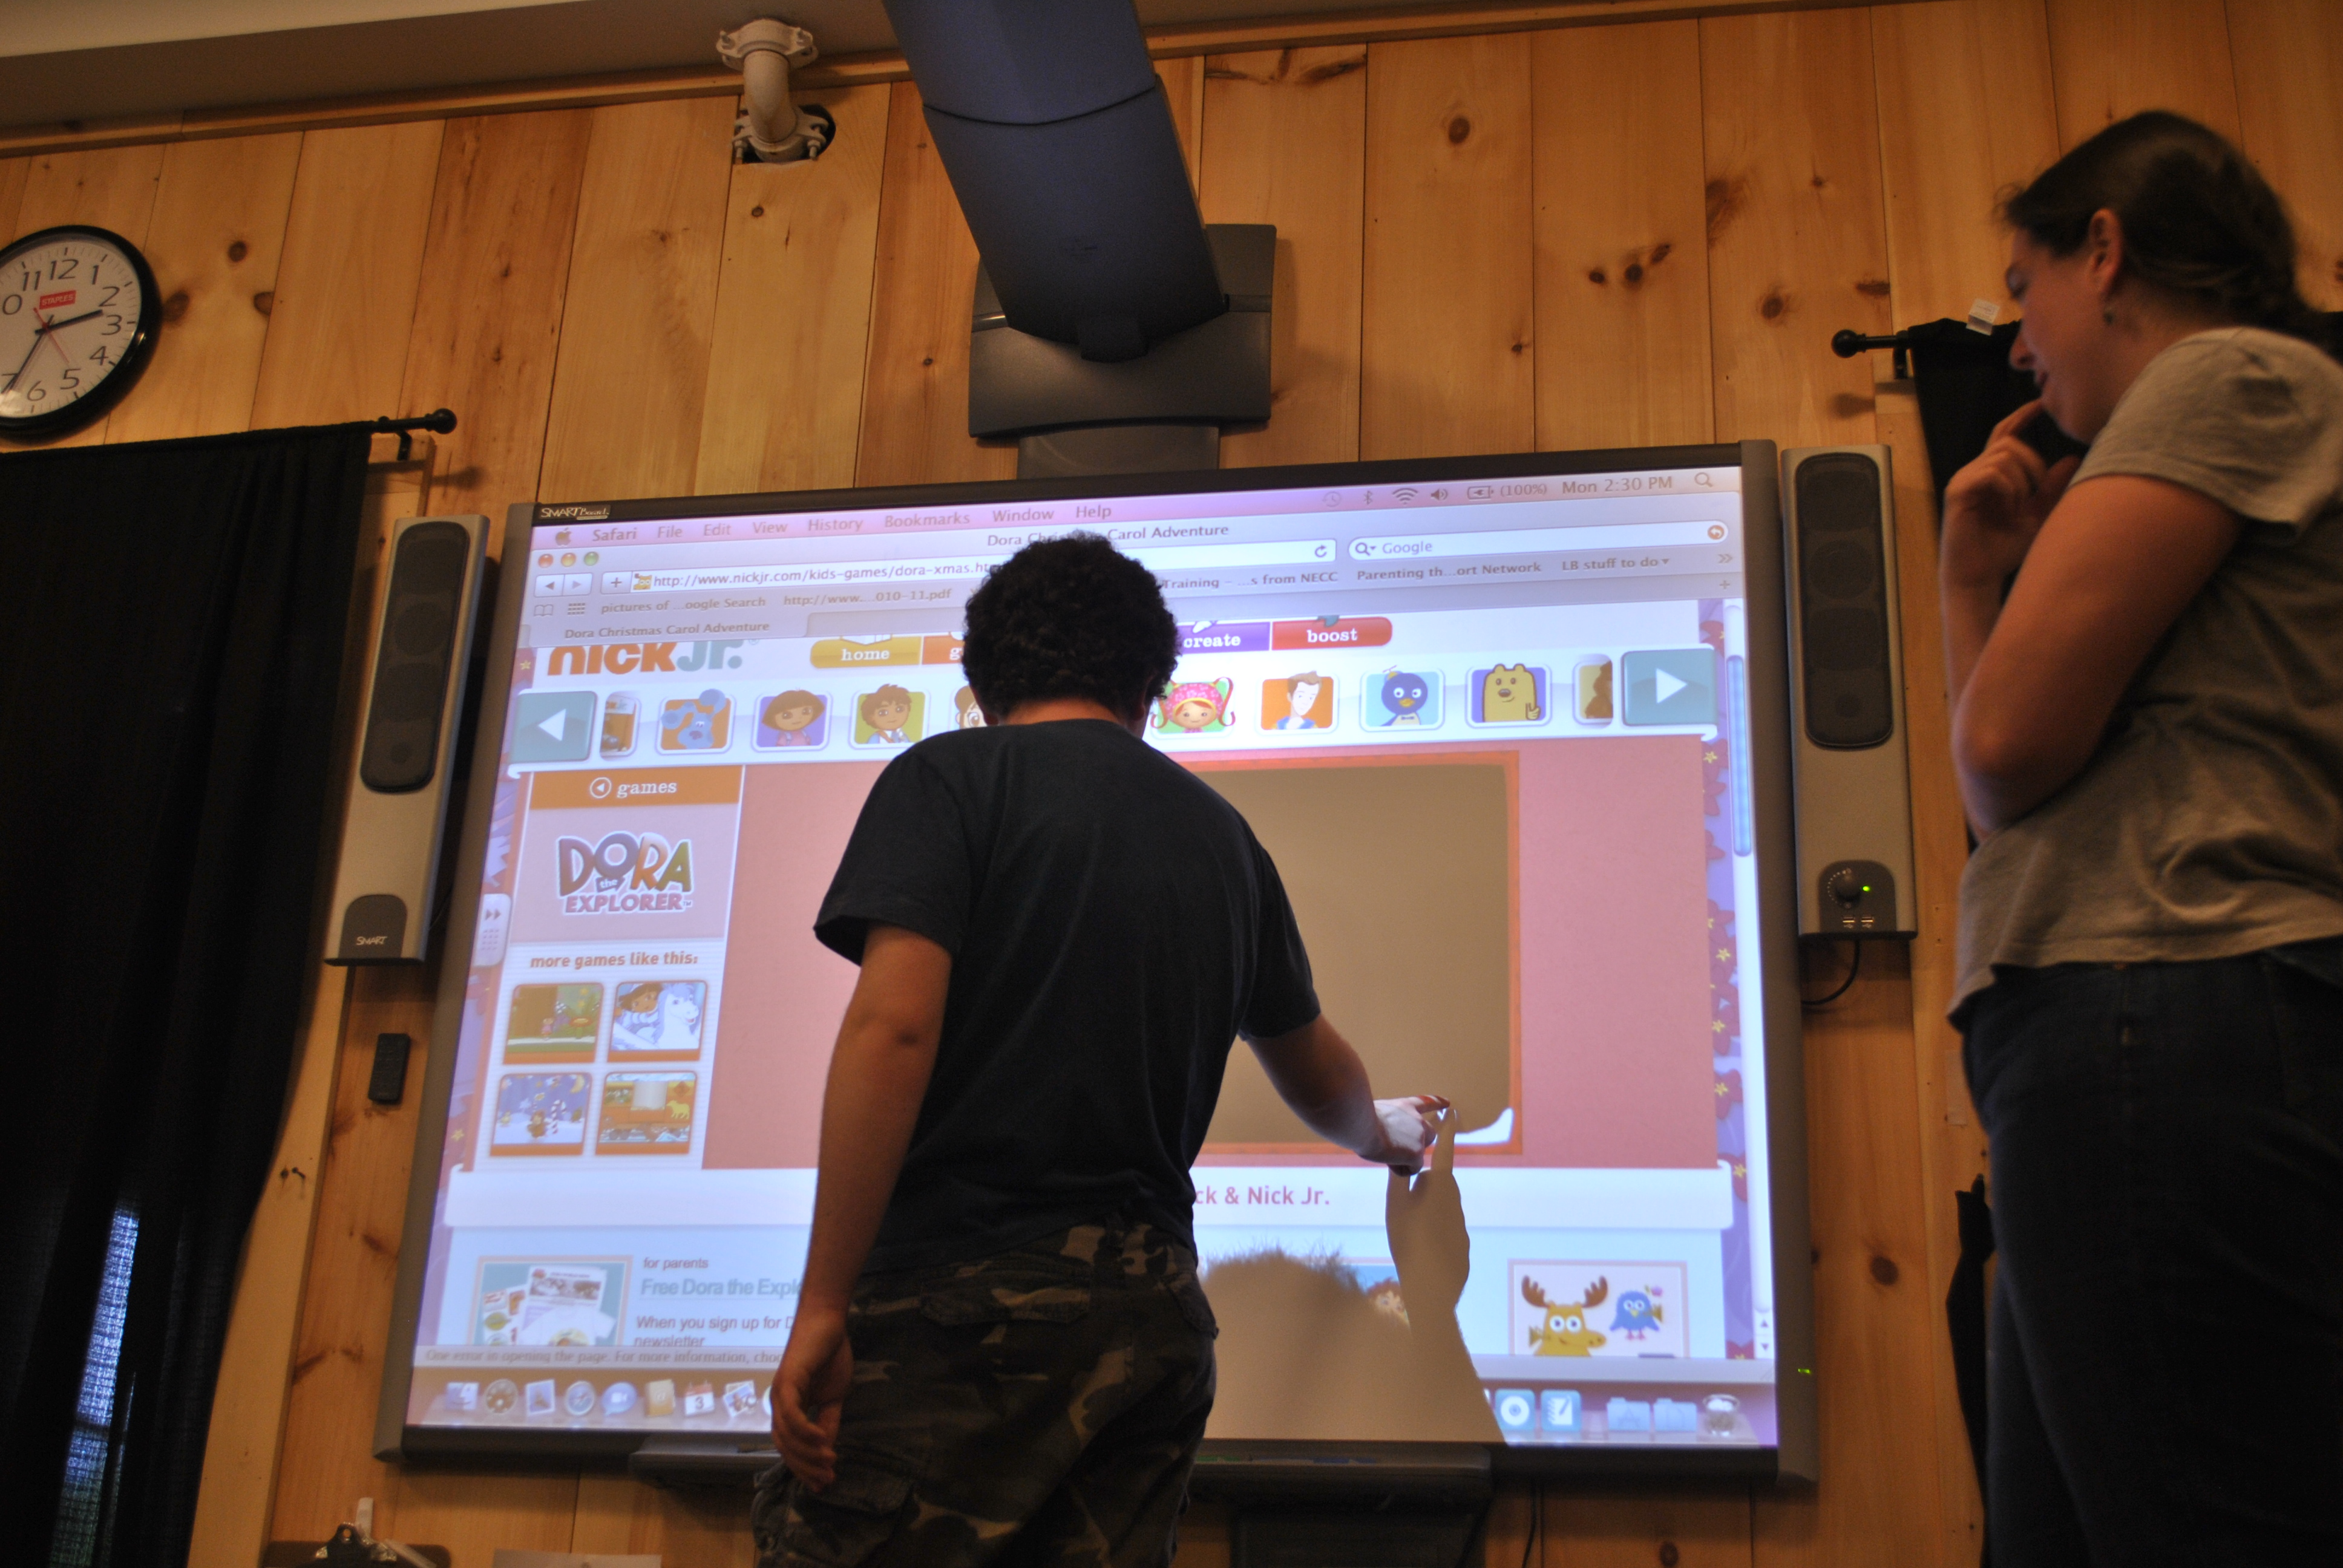 interactive-smart-board-technology-entices-students-to-engage-in-lessons